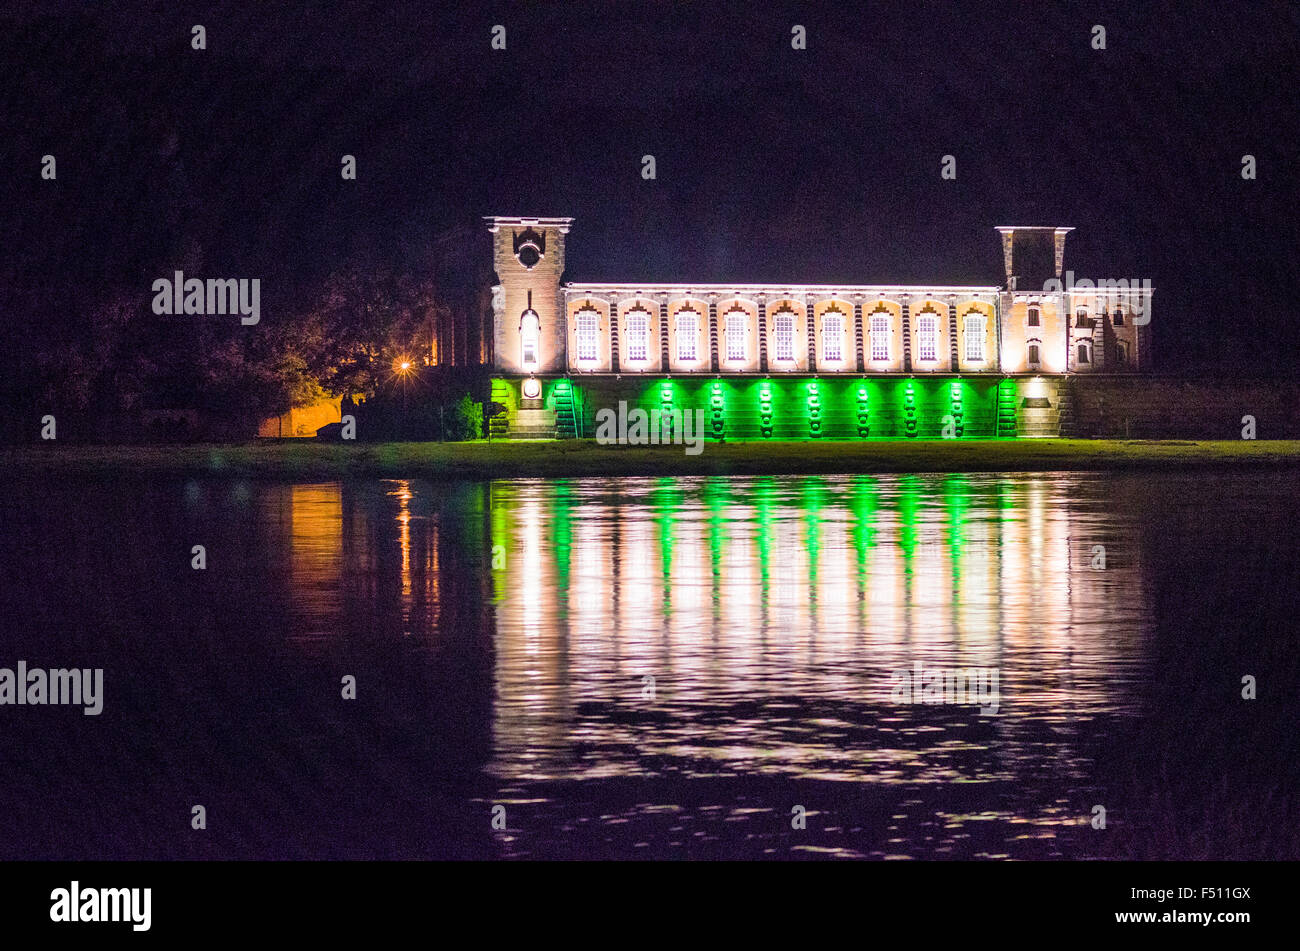 The water works Saloppe, mirroring at night in the river Elbe - Stock Image